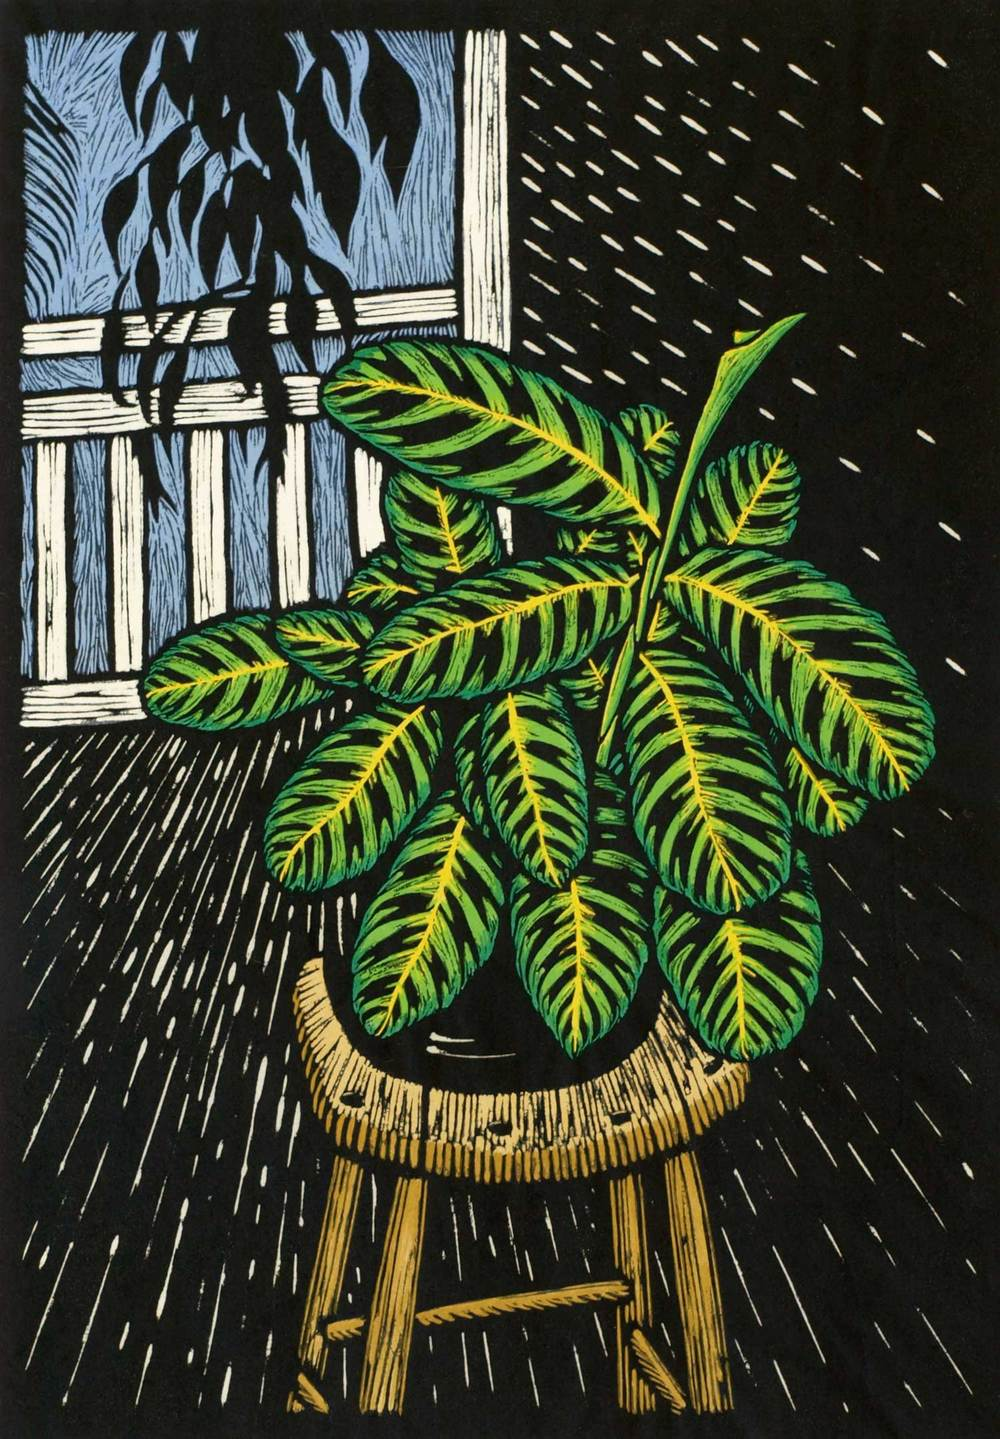 plant-on-stool-linocut-rachel-newling.jpg